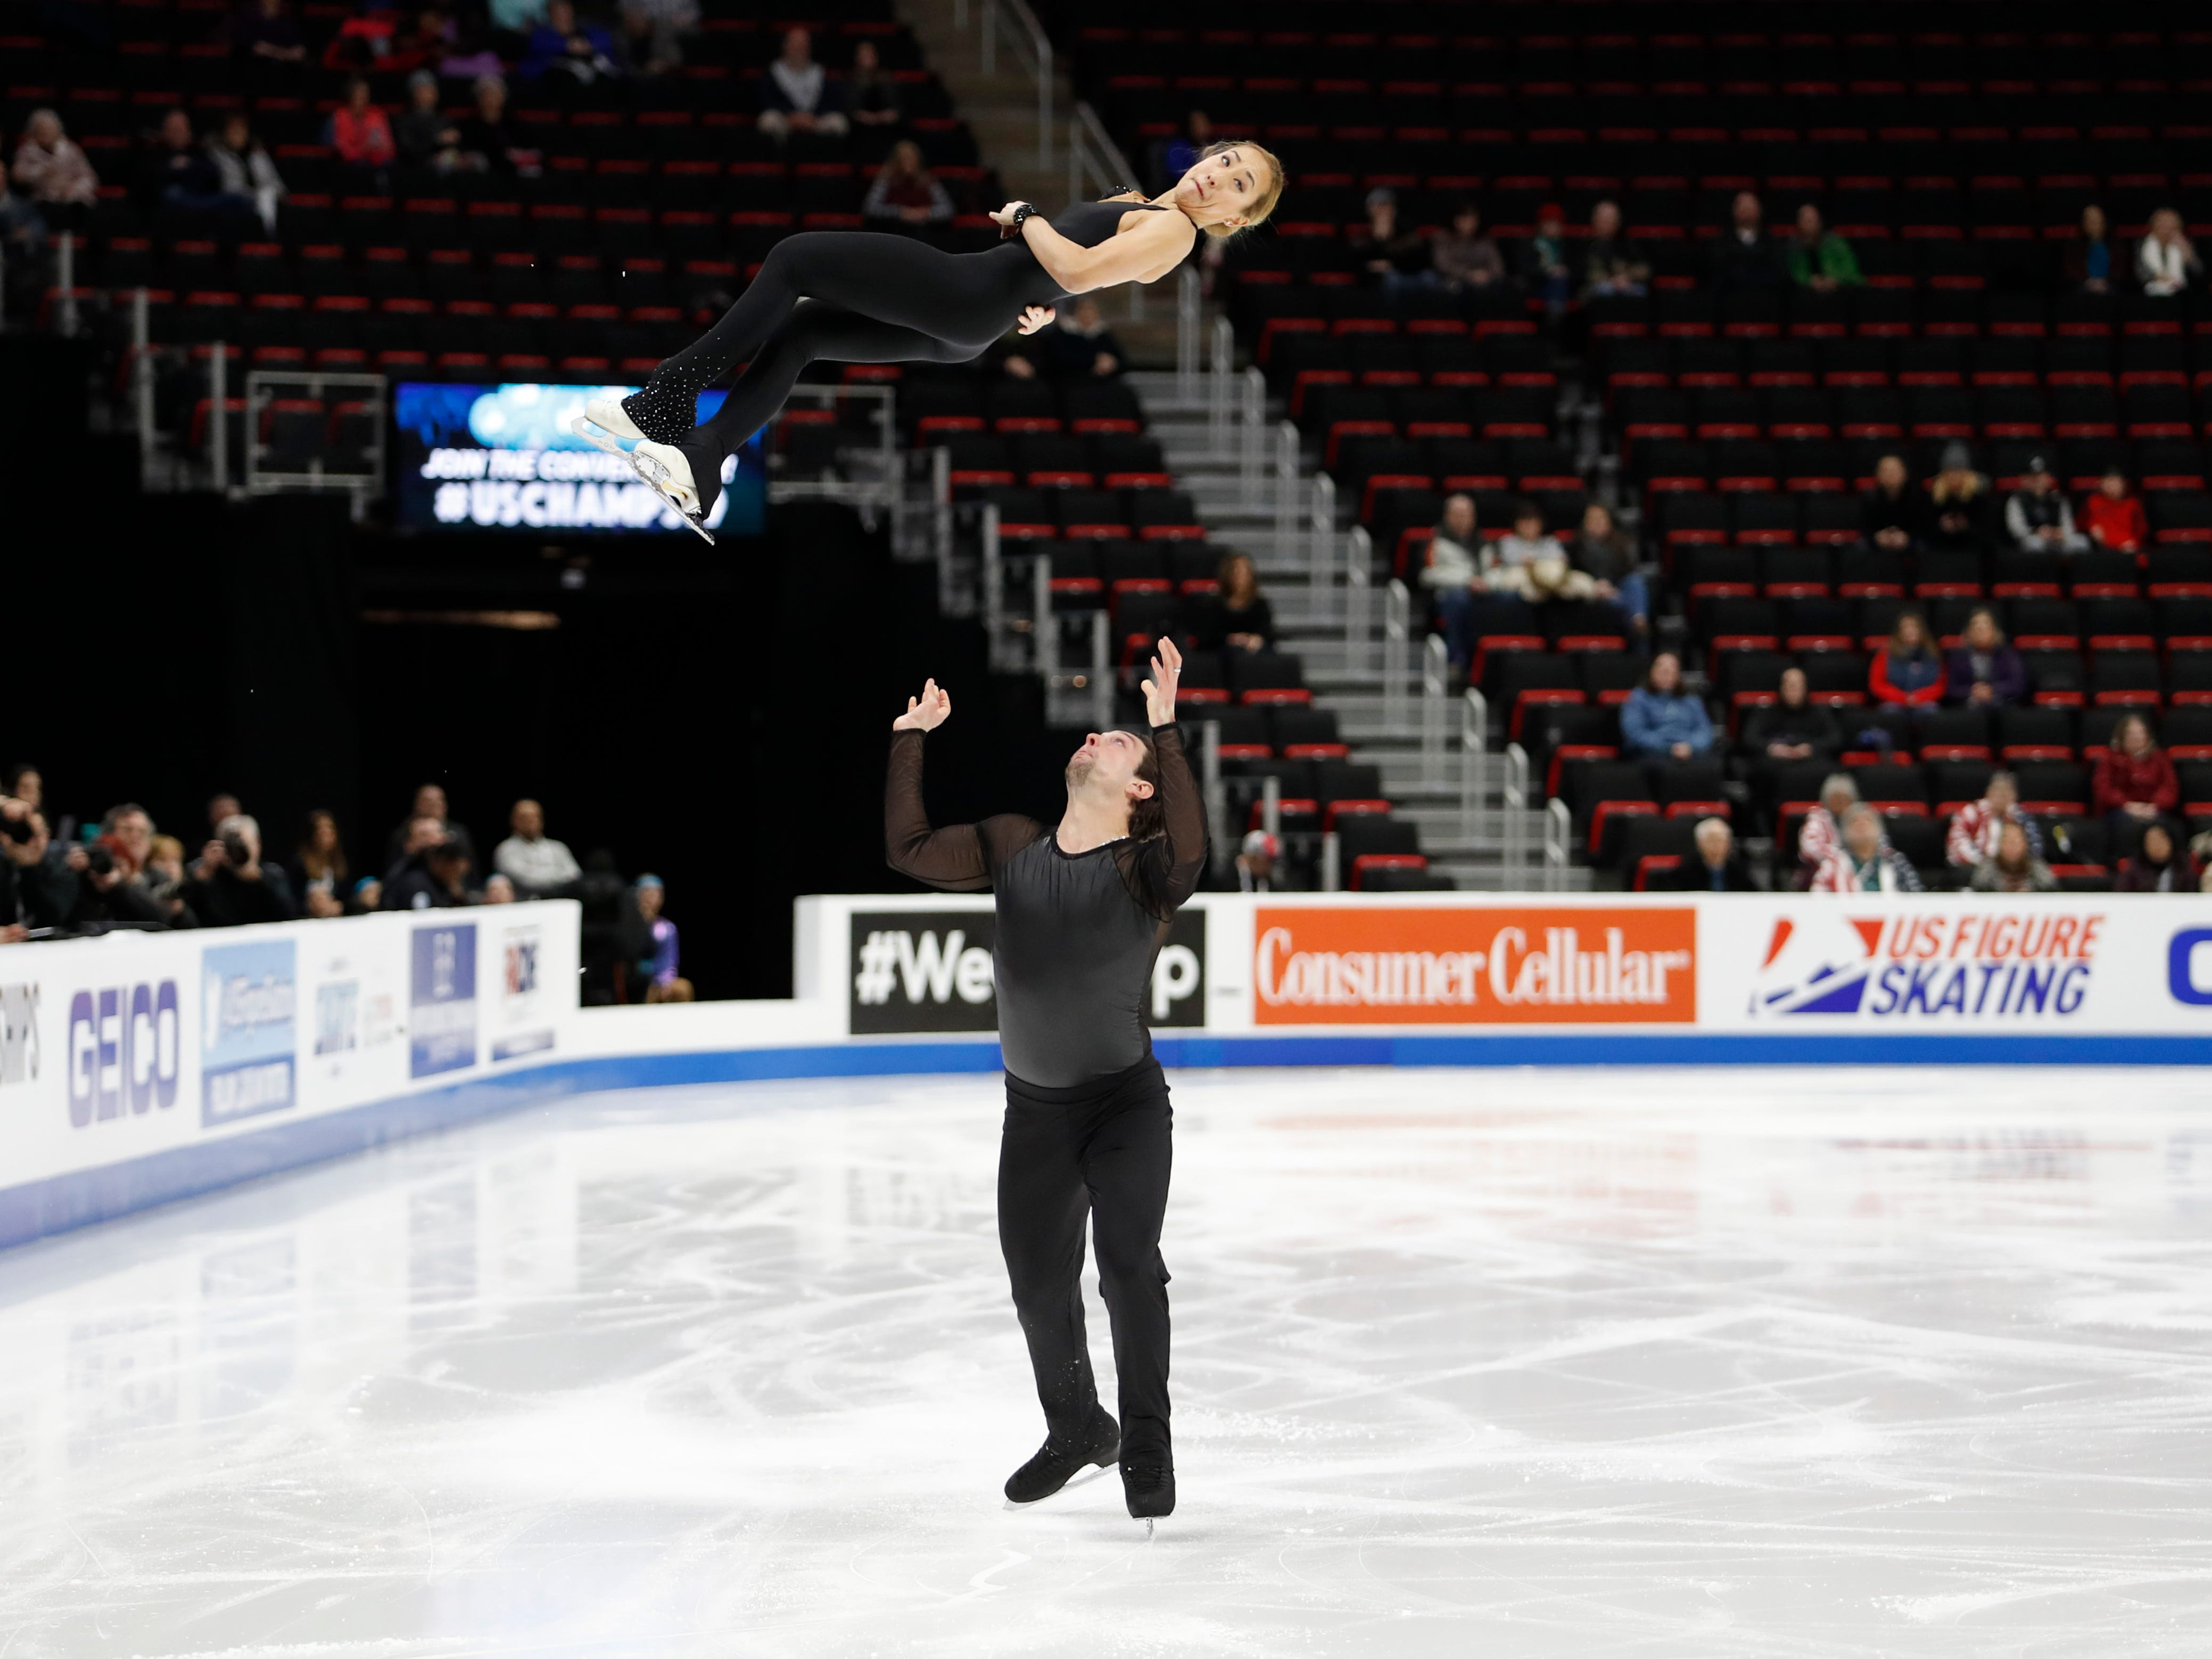 Erika Smith and A.J. Reiss perform in the pairs short program.